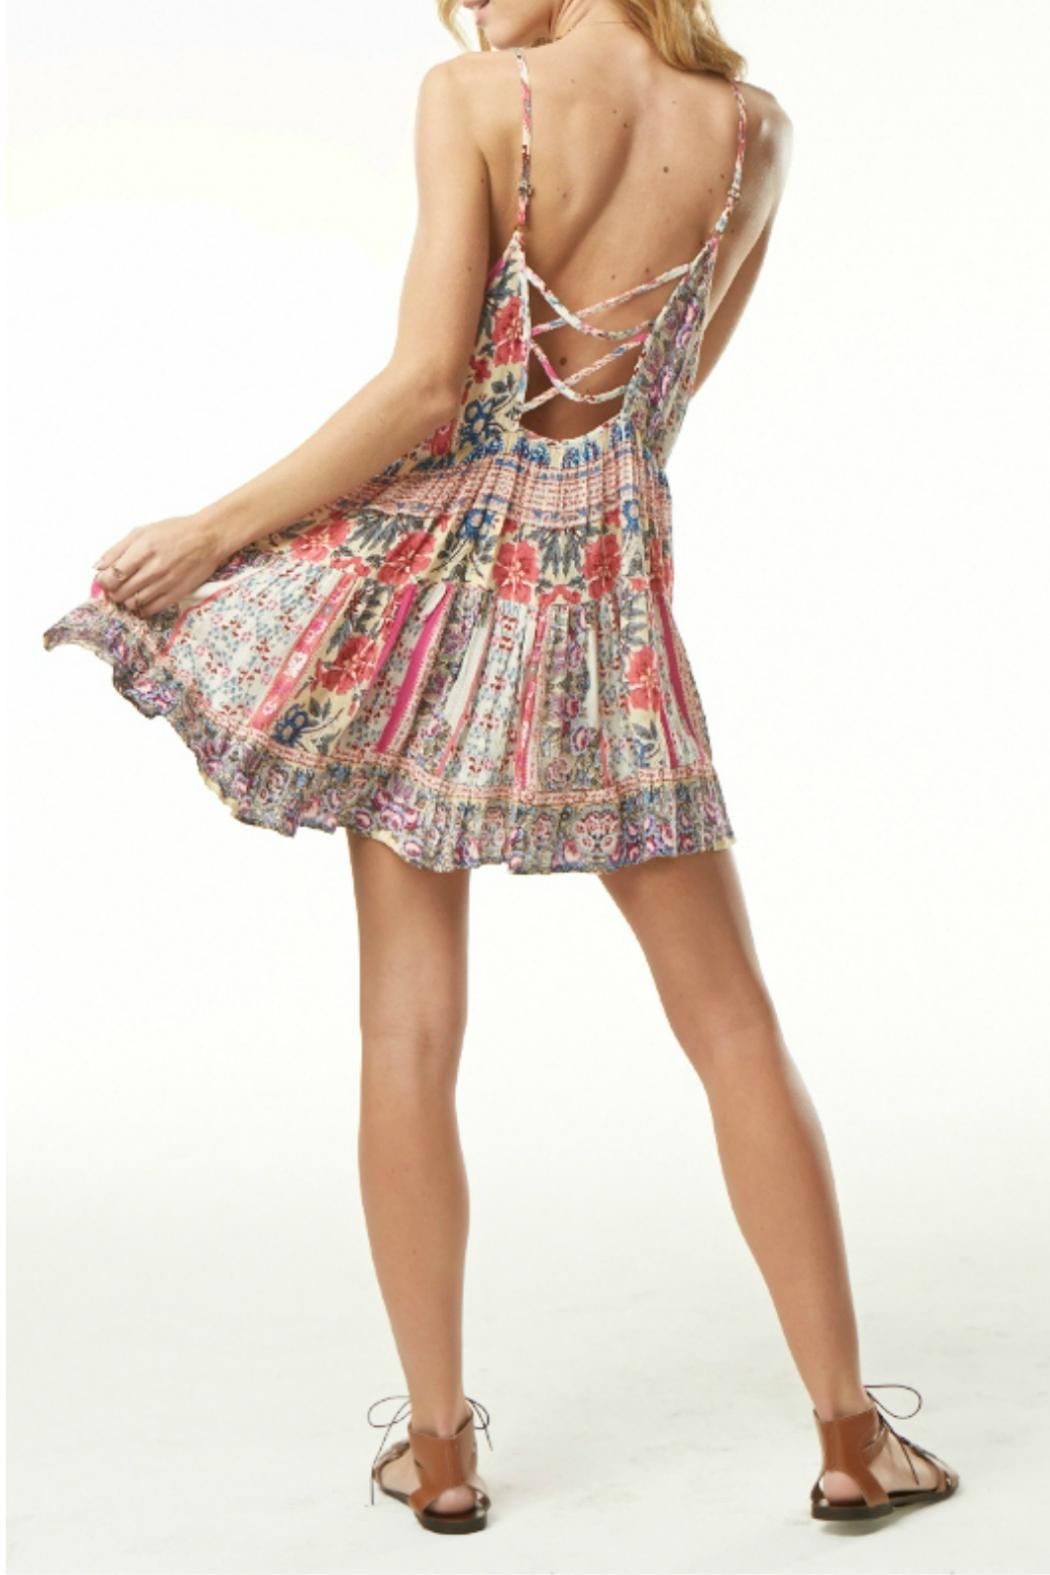 74a176016f6b0 Poe and Arrows Tiered Floral Print Dress from Texas by POE and ...